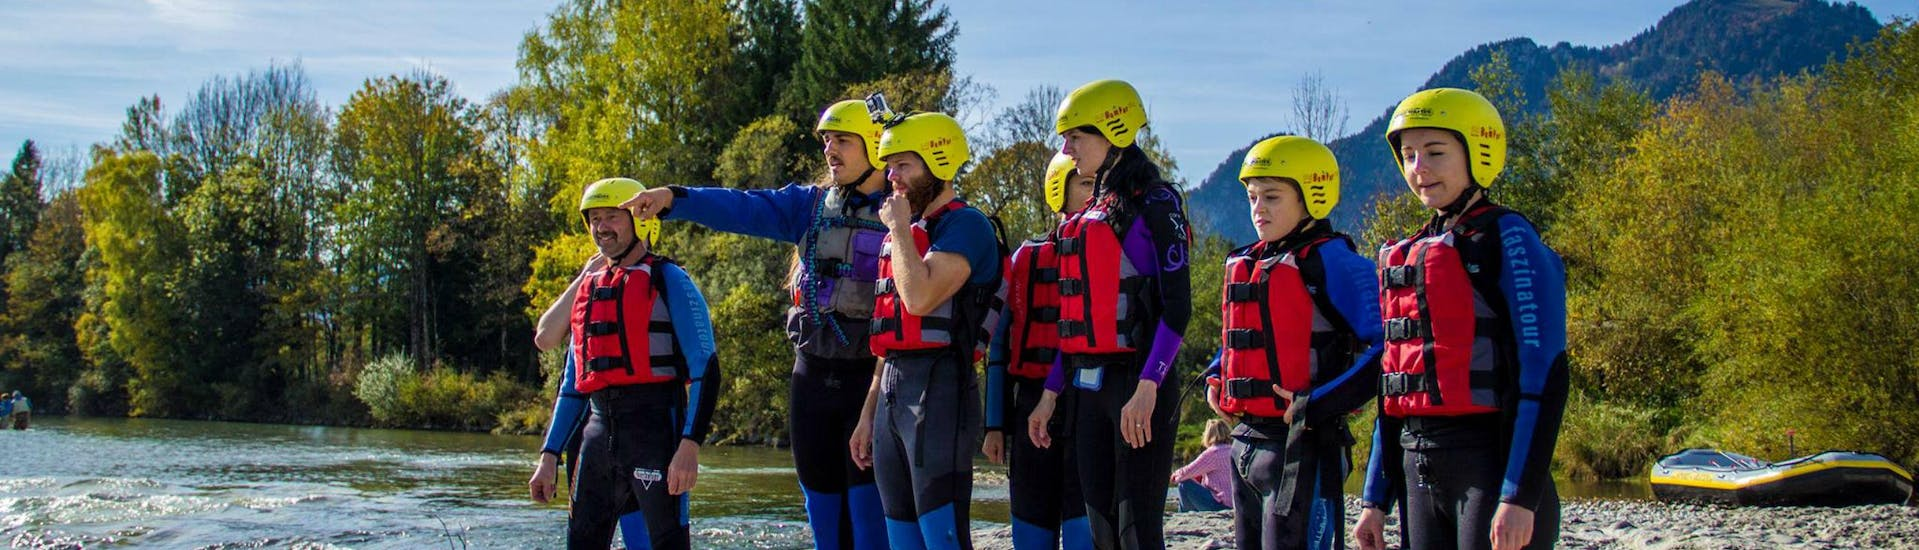 river-tubing-on-the-isar-river-for-explorers-outdoor-dahoam-hero